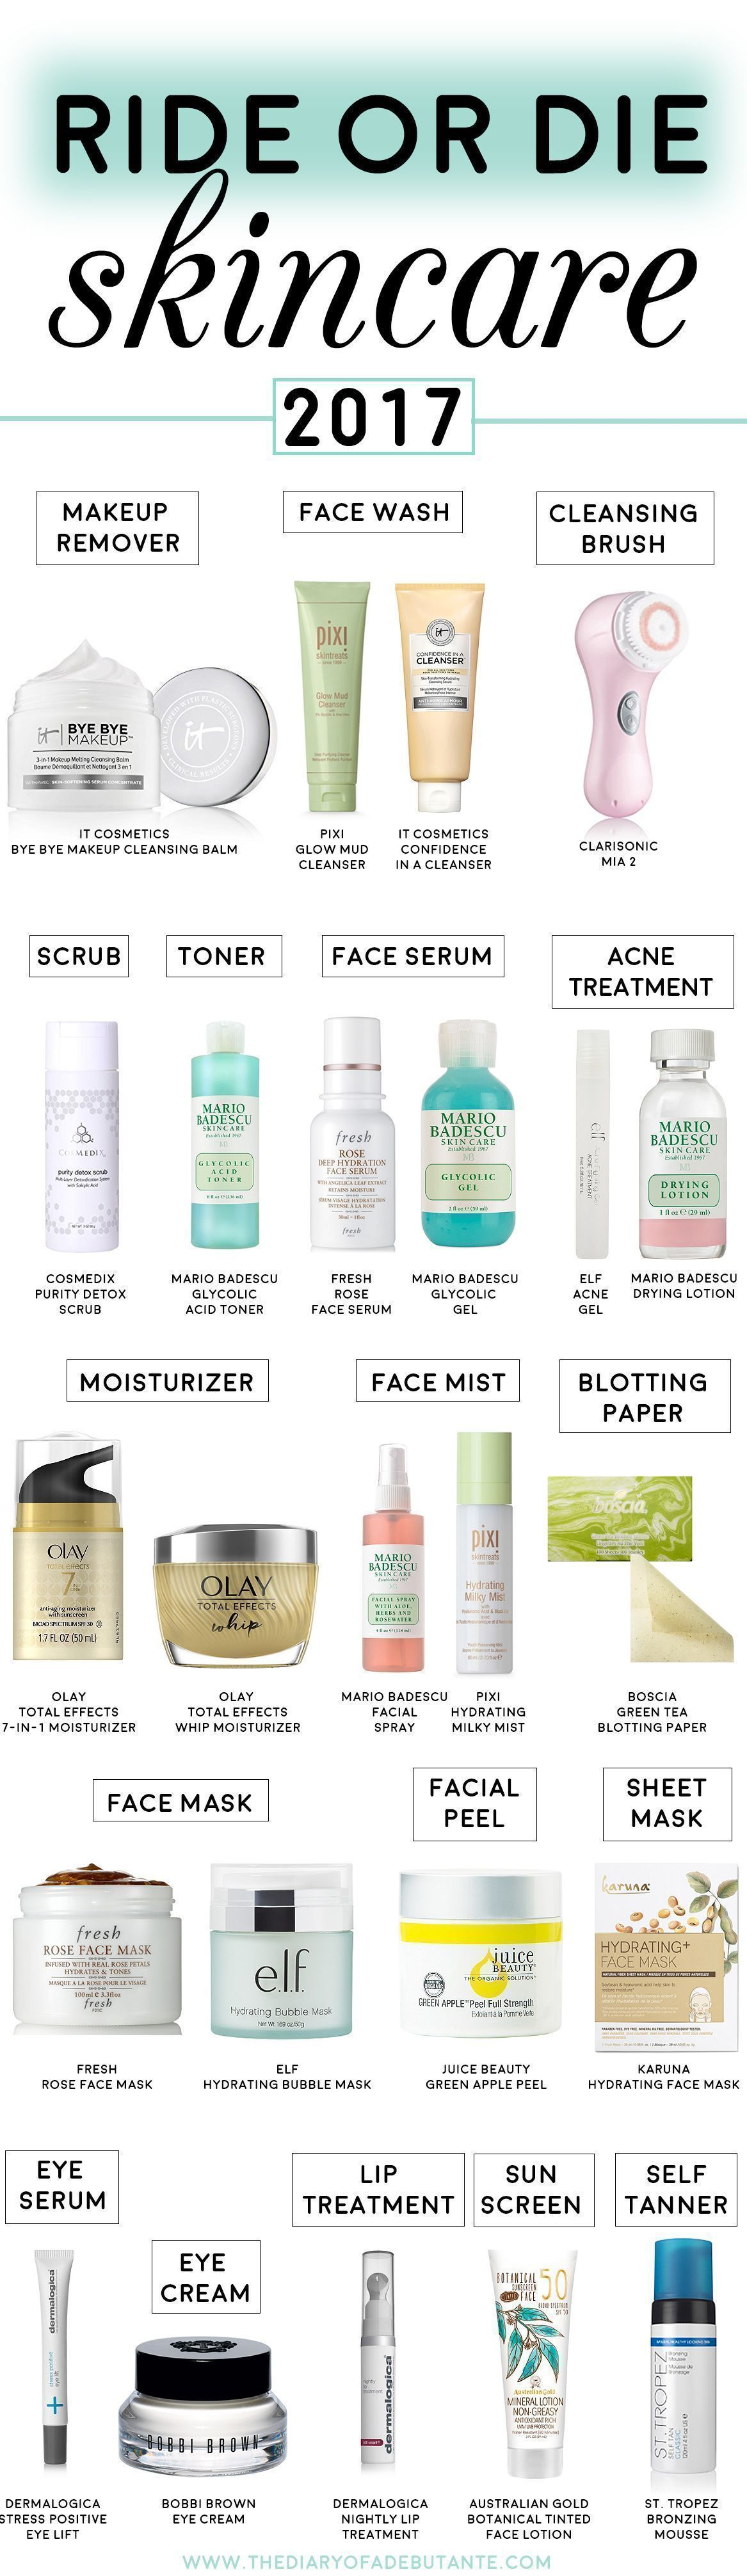 Best Skin And Facial Products For Oily Combination Skin Best